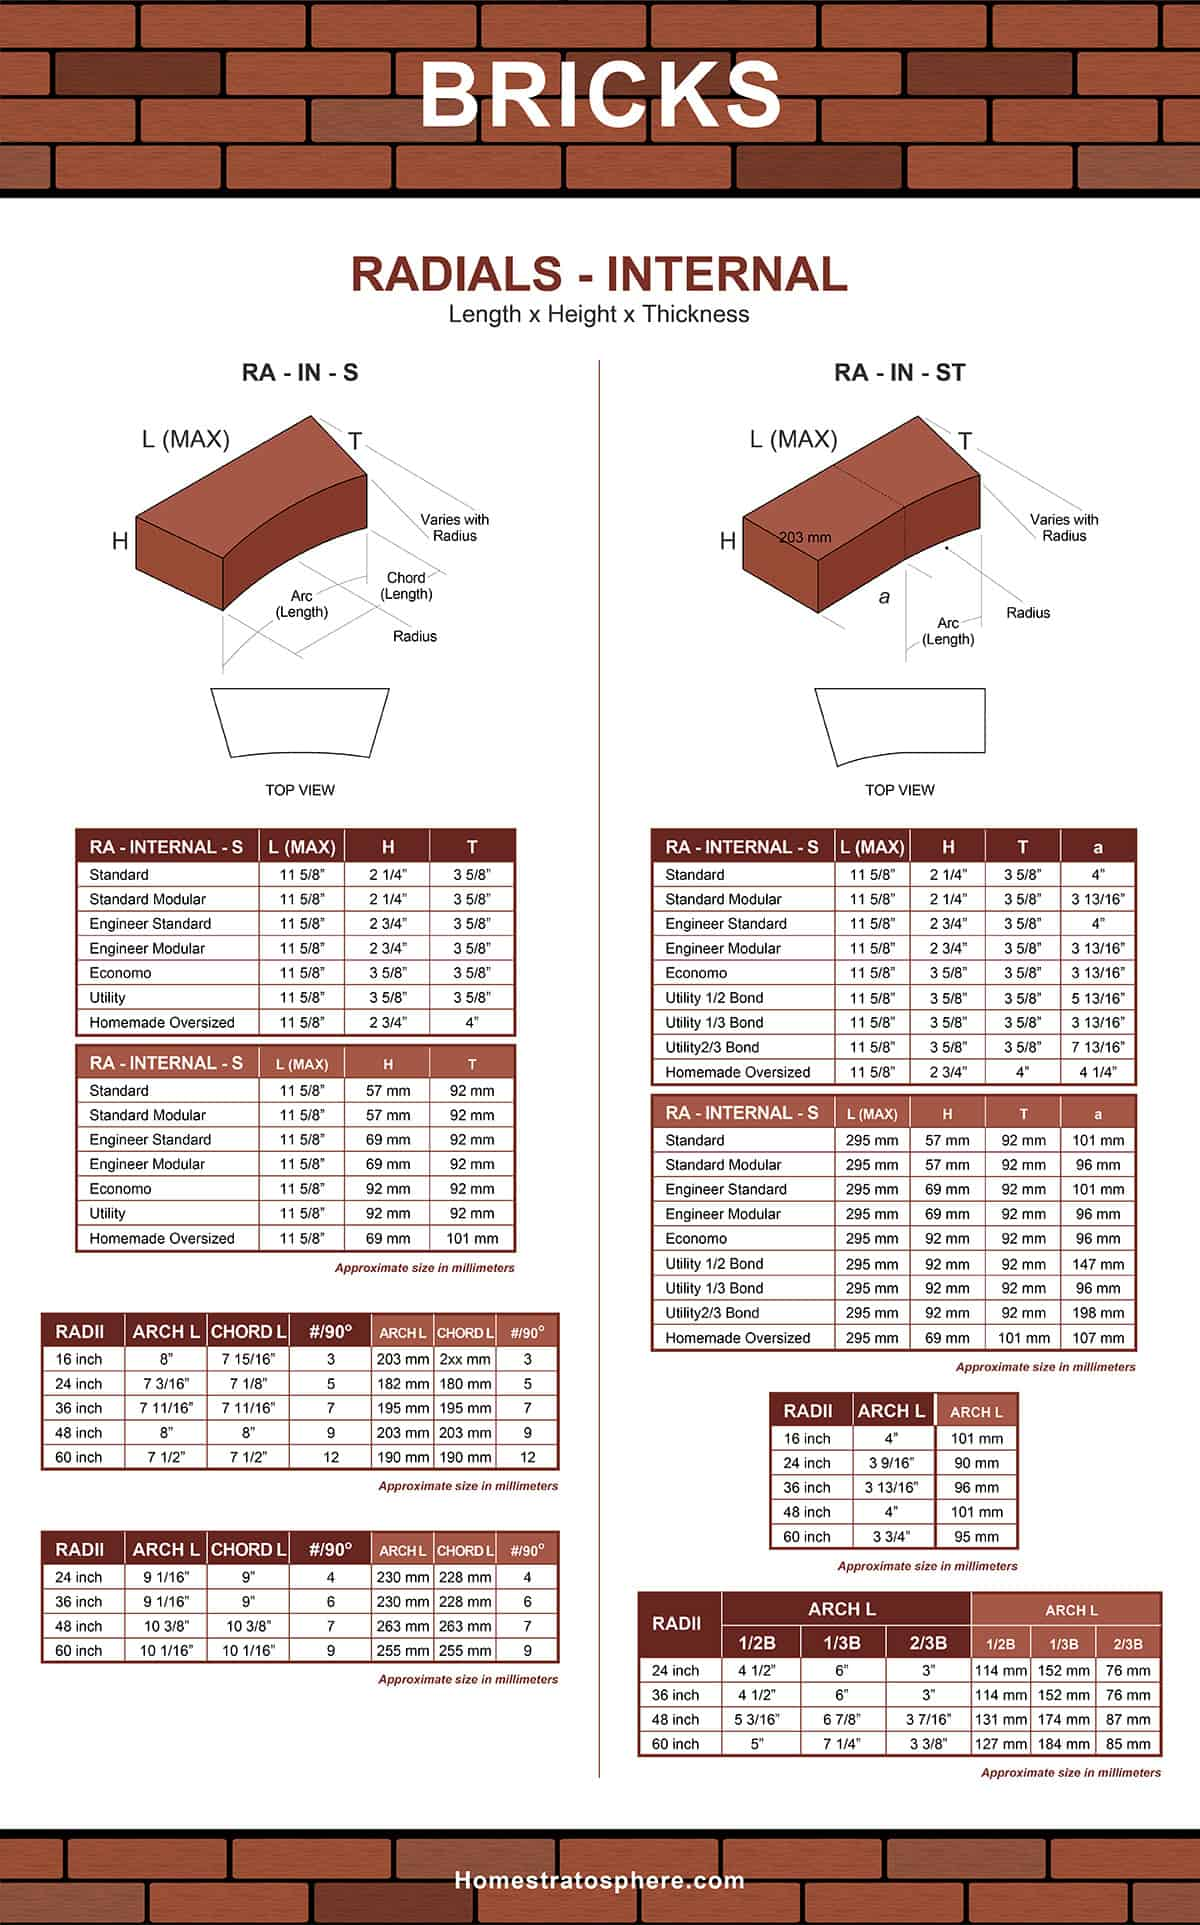 Internal Radial Bricks - size chart